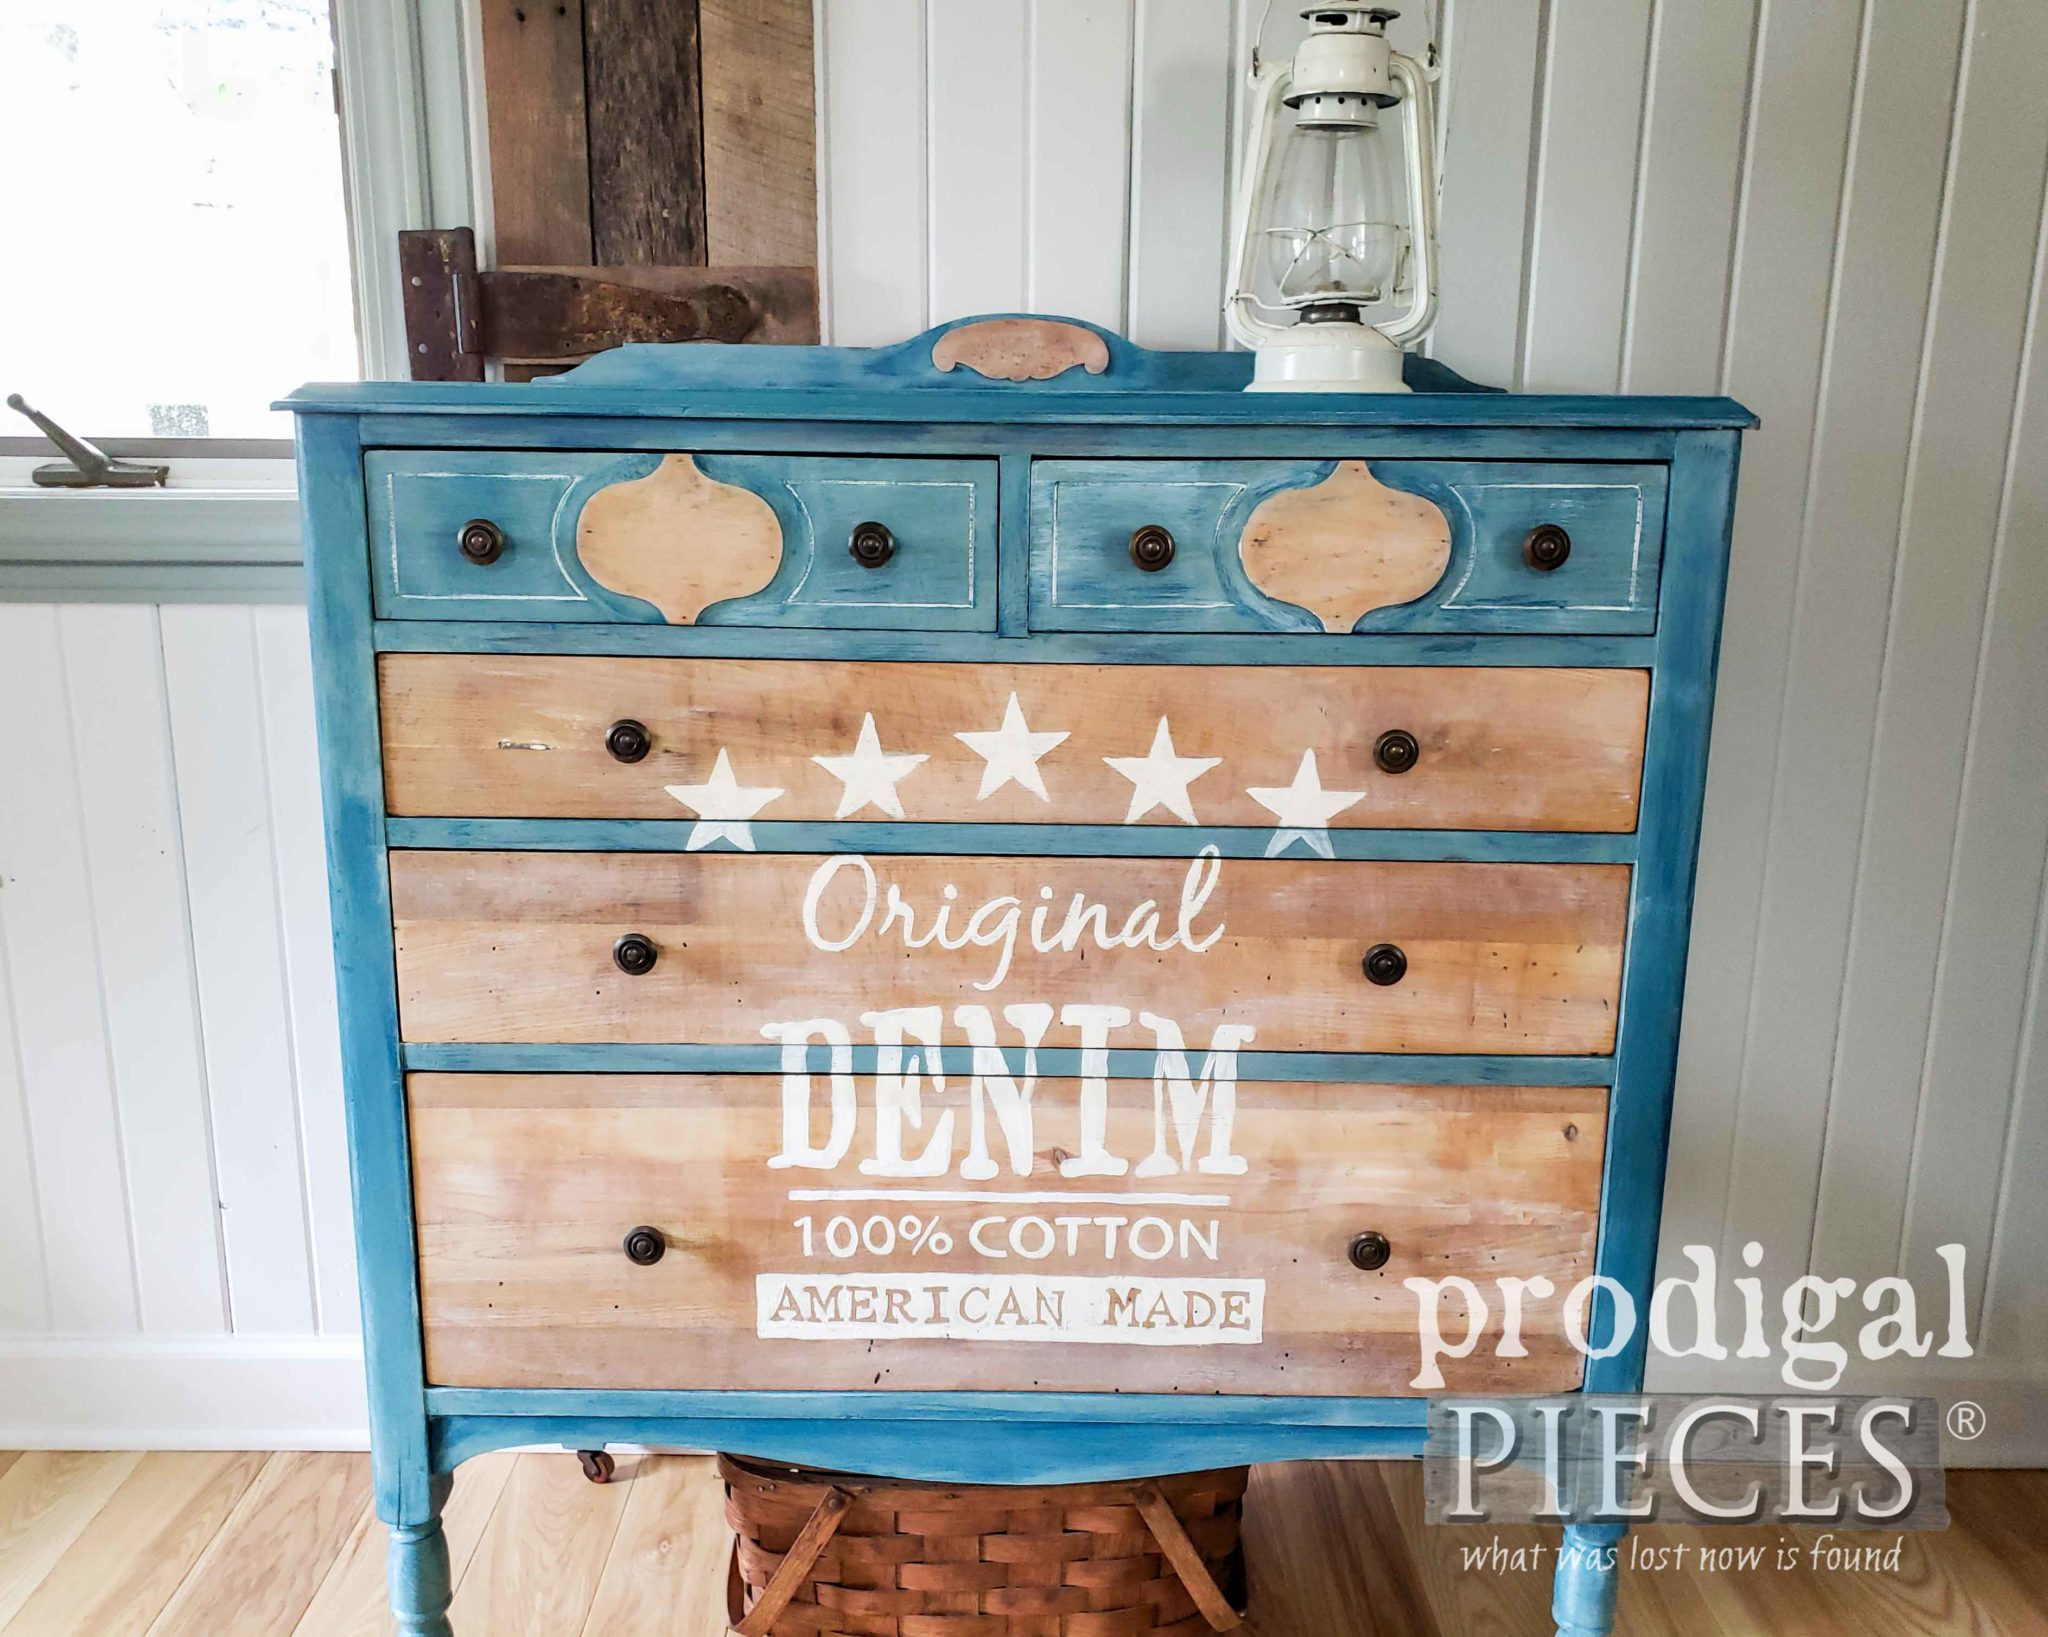 Rustic Farmhouse Style Denim Chest of Drawers with Typography by Larissa of Prodigal Pieces | prodigalpieces.com #prodigalpieces #diy #home #furniture #art #farmhouse #homedecor